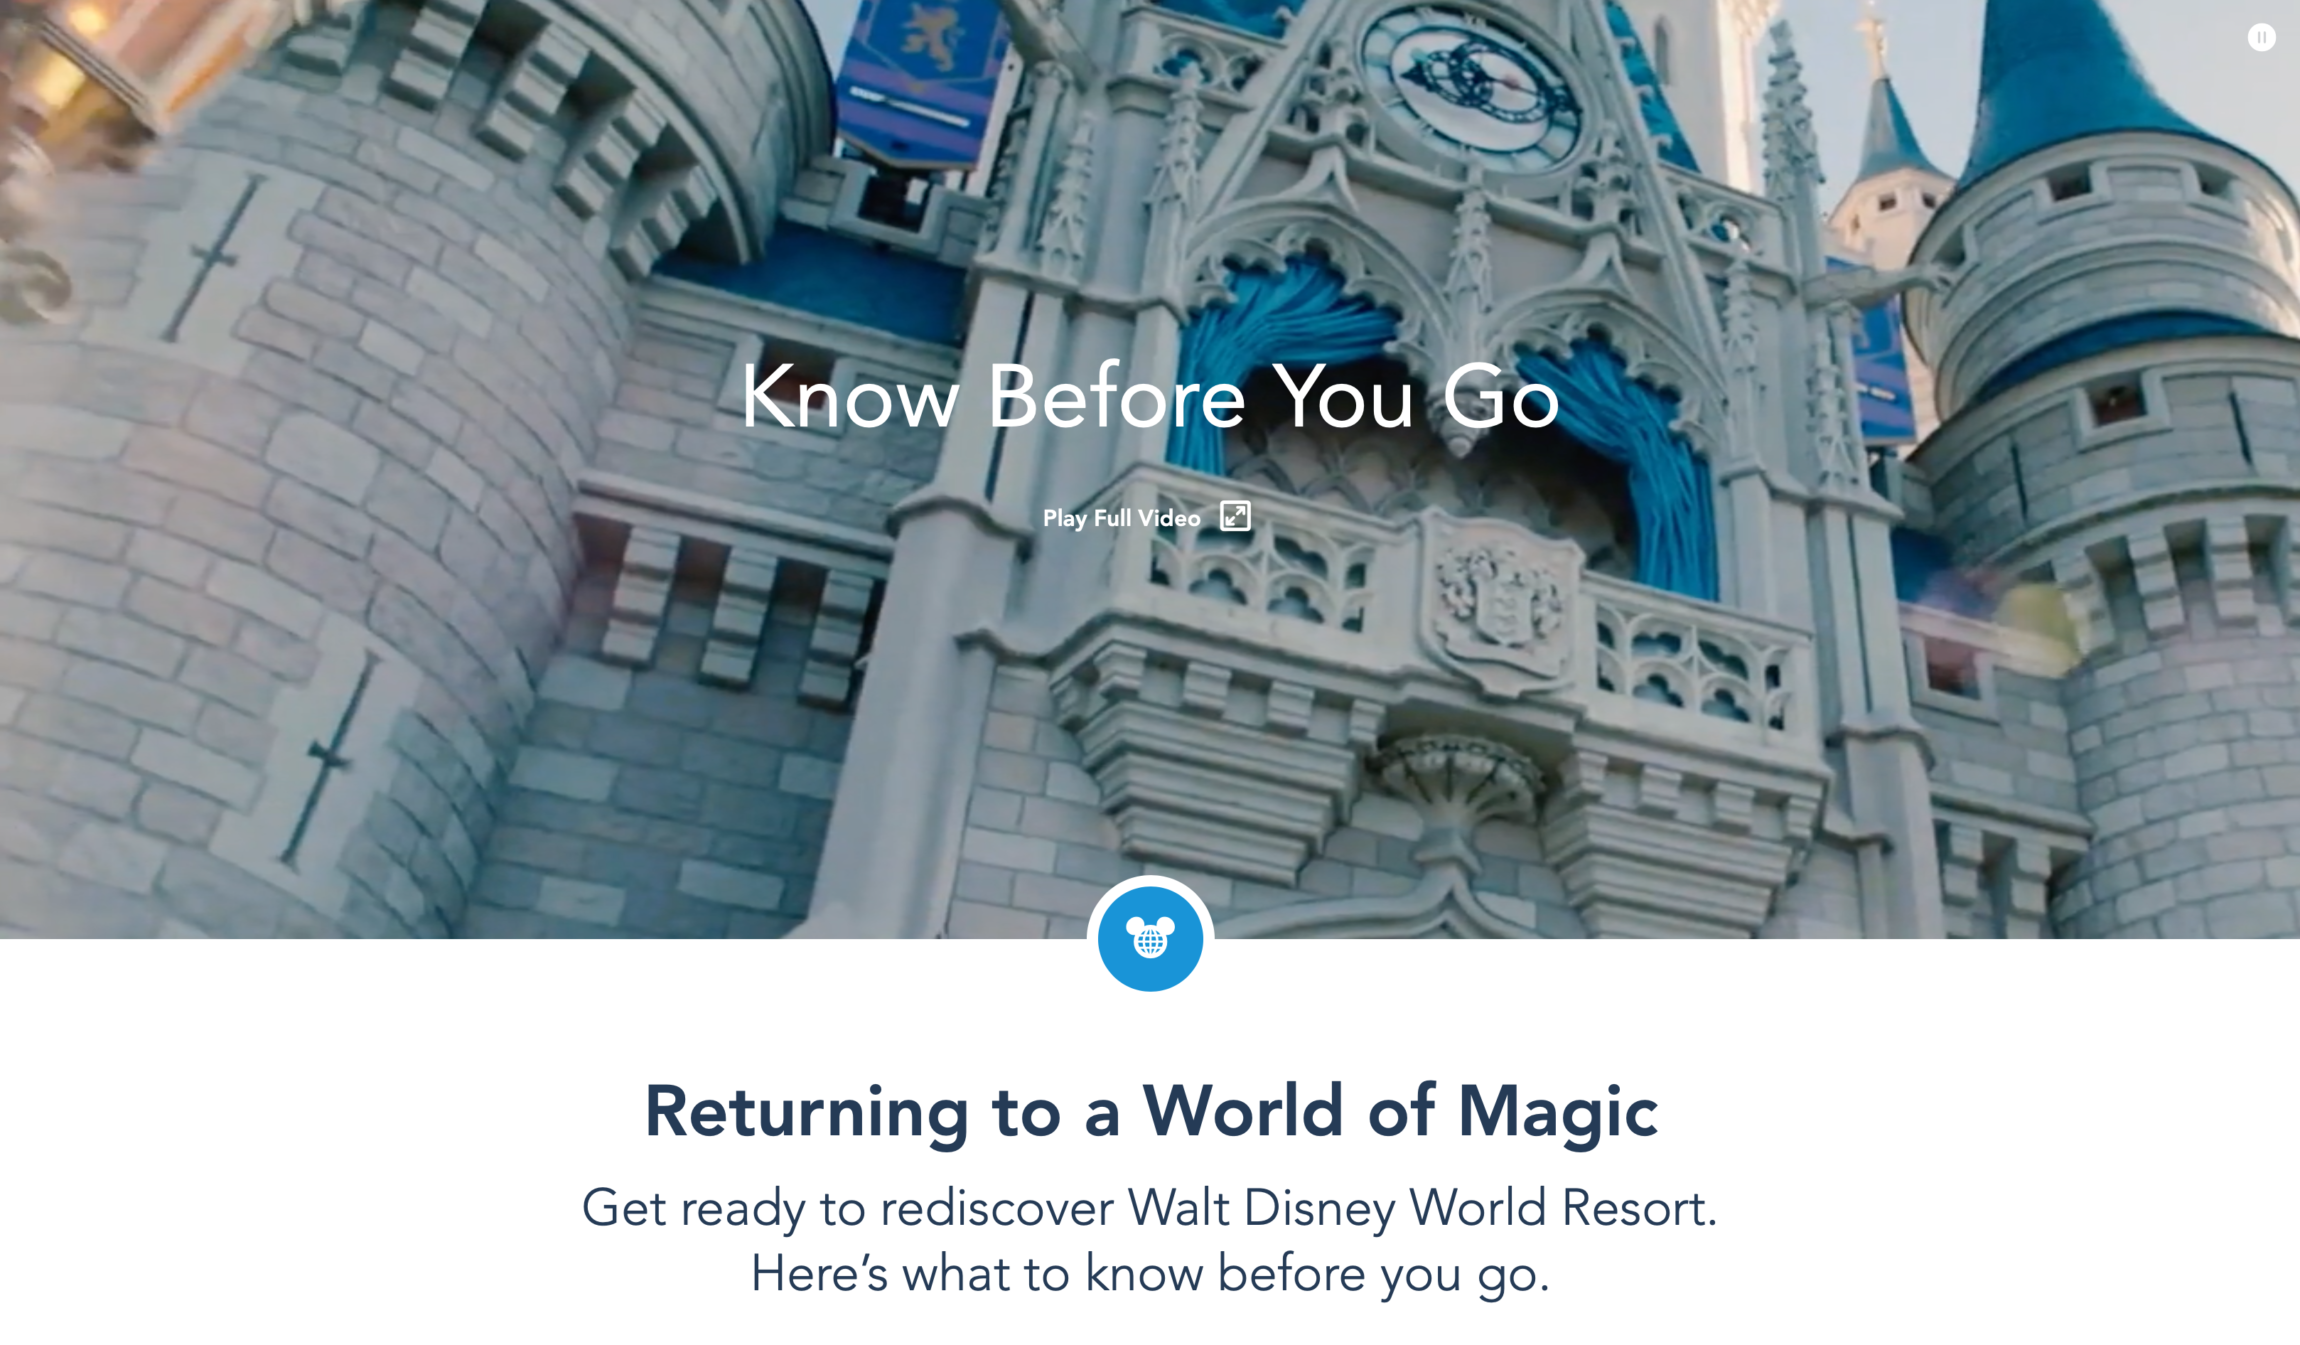 The first thing users see on the Disney COVID page is a full-width video pulling out key messaging